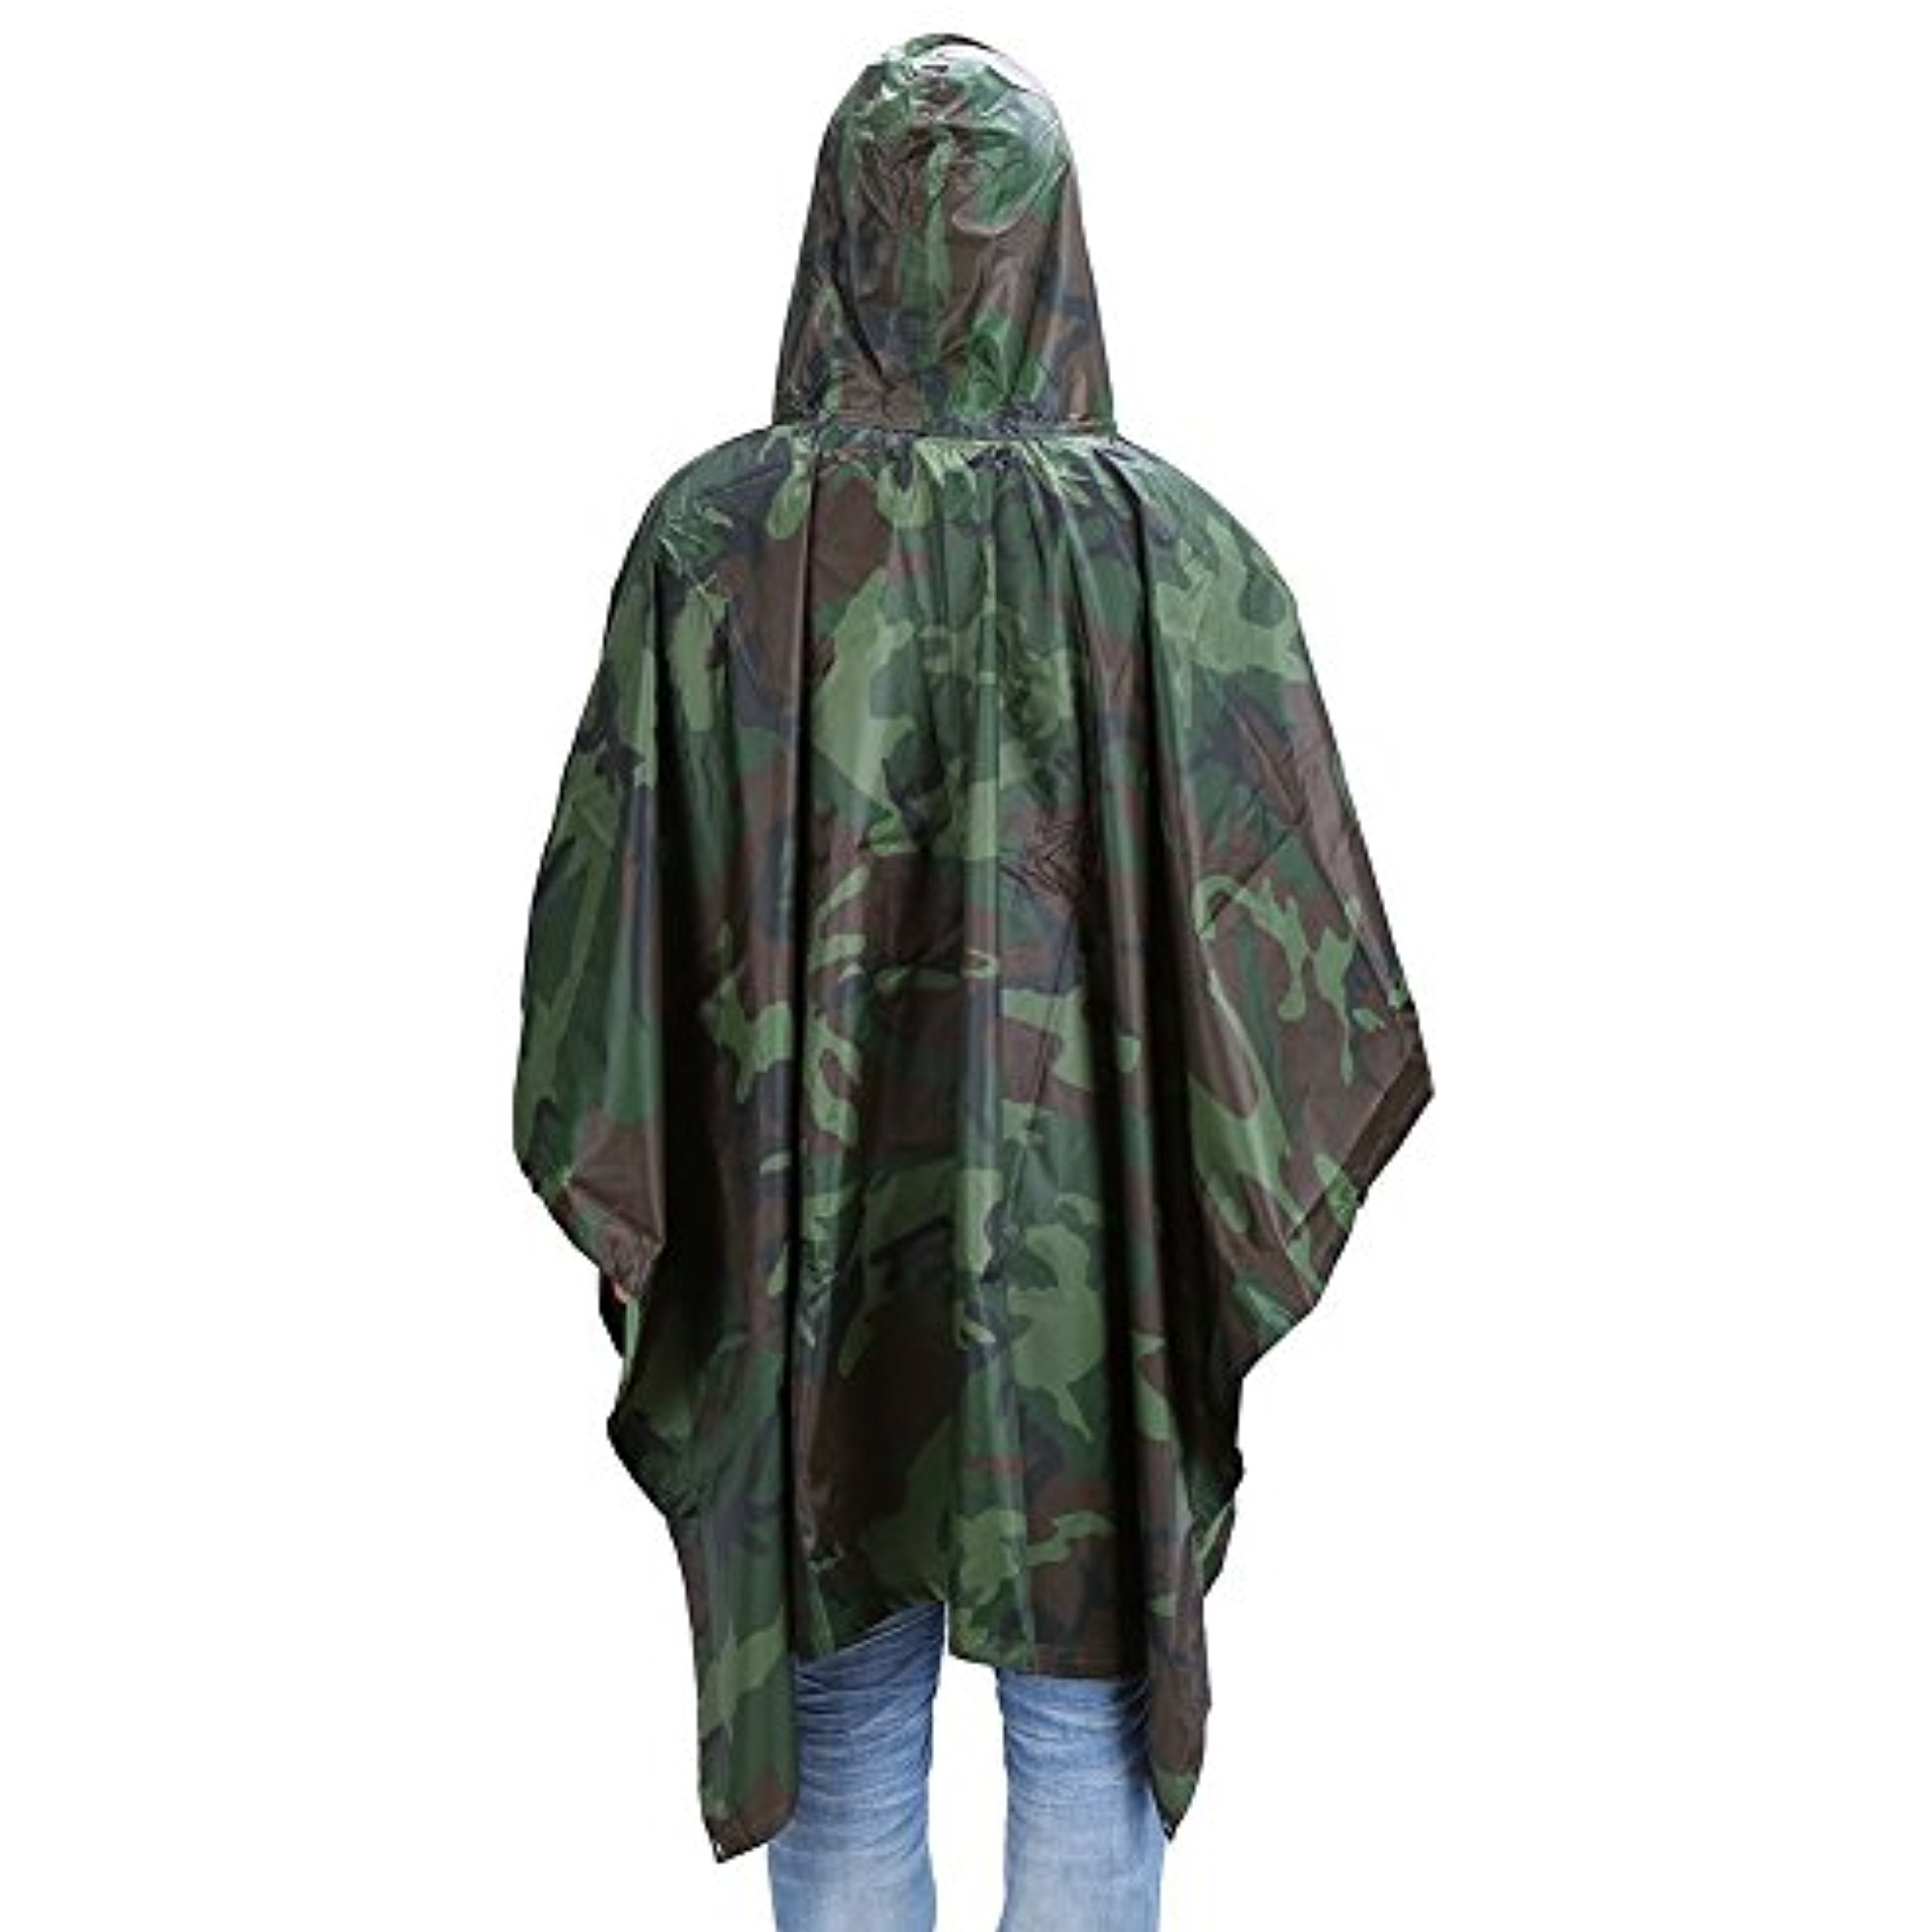 "Multi-Use Rain Poncho, 55"" x 90""Waterproof Ripstop Hooded Rainwear Rain Coat Slicker for Adults Hunting... by"